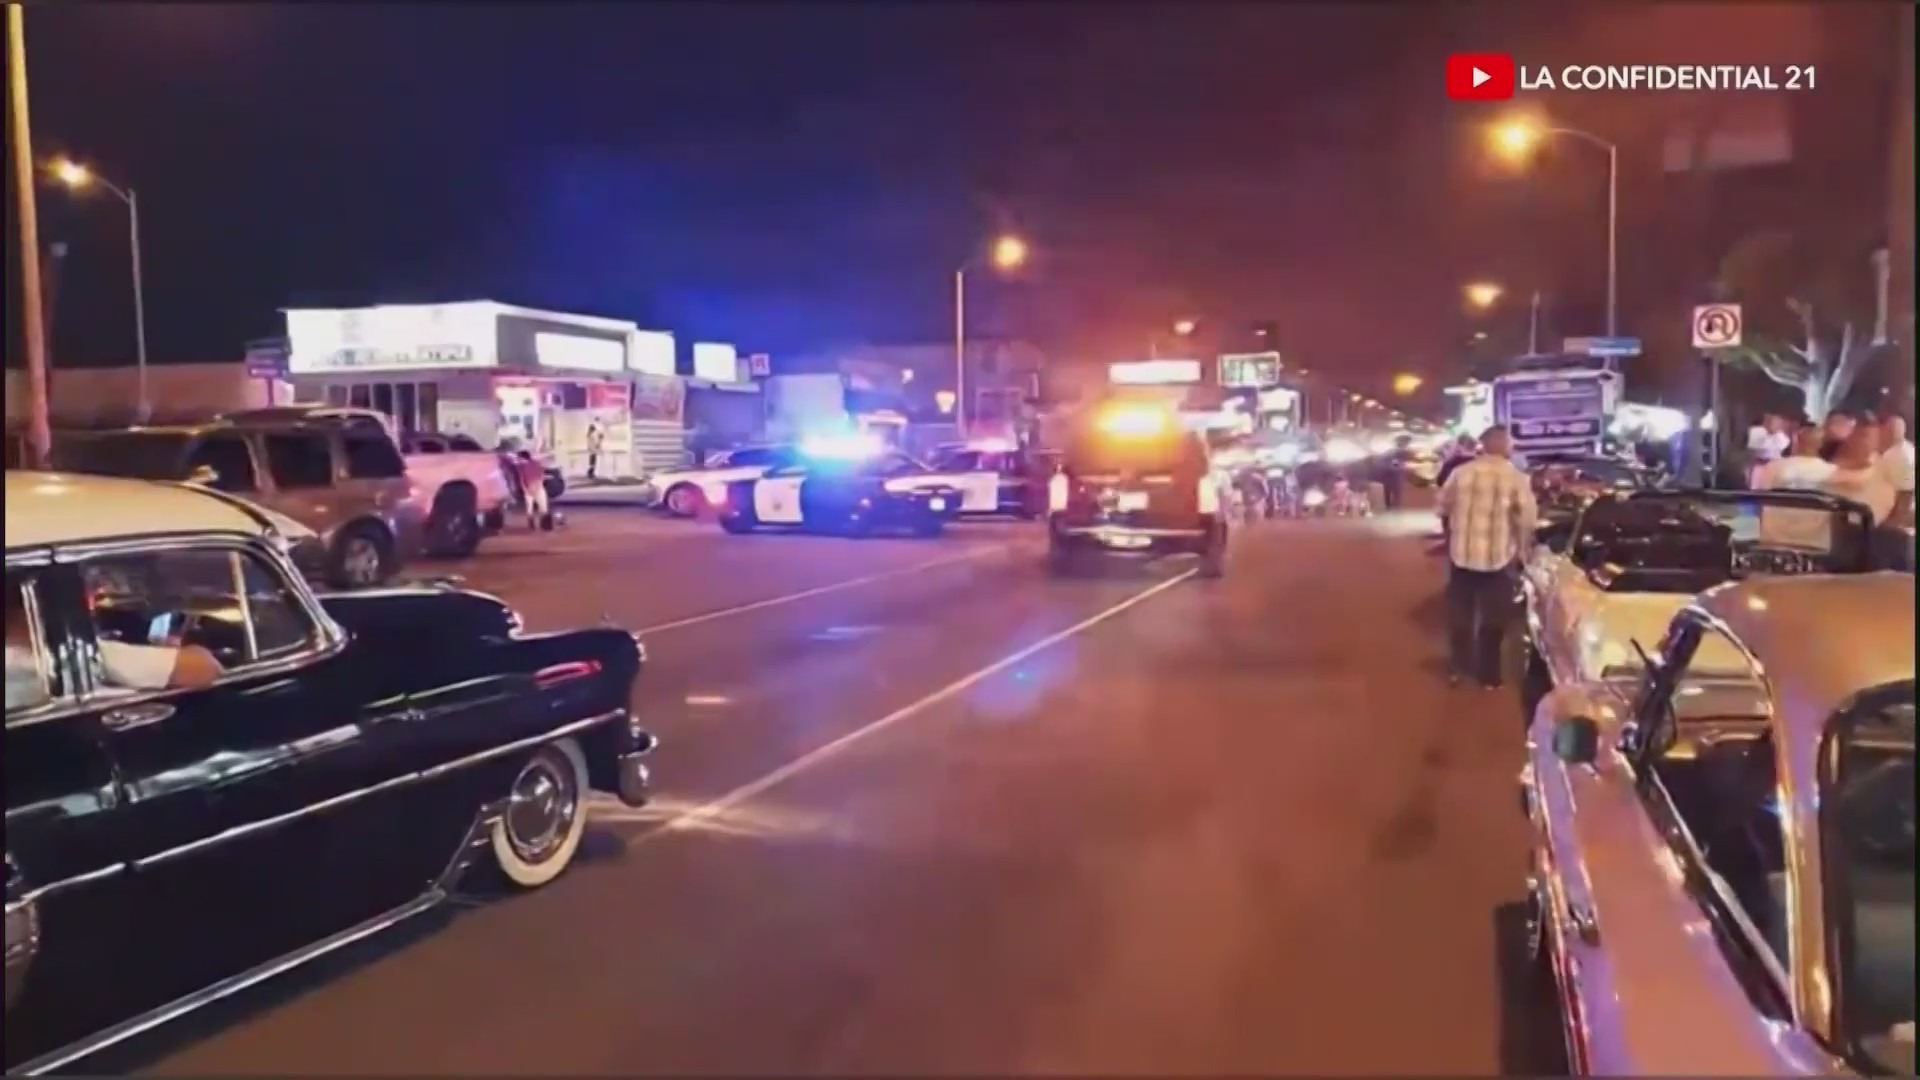 A teenager is still recovering after allegedly being hit by a CHP officer in East L.A. in a hit-and-run.